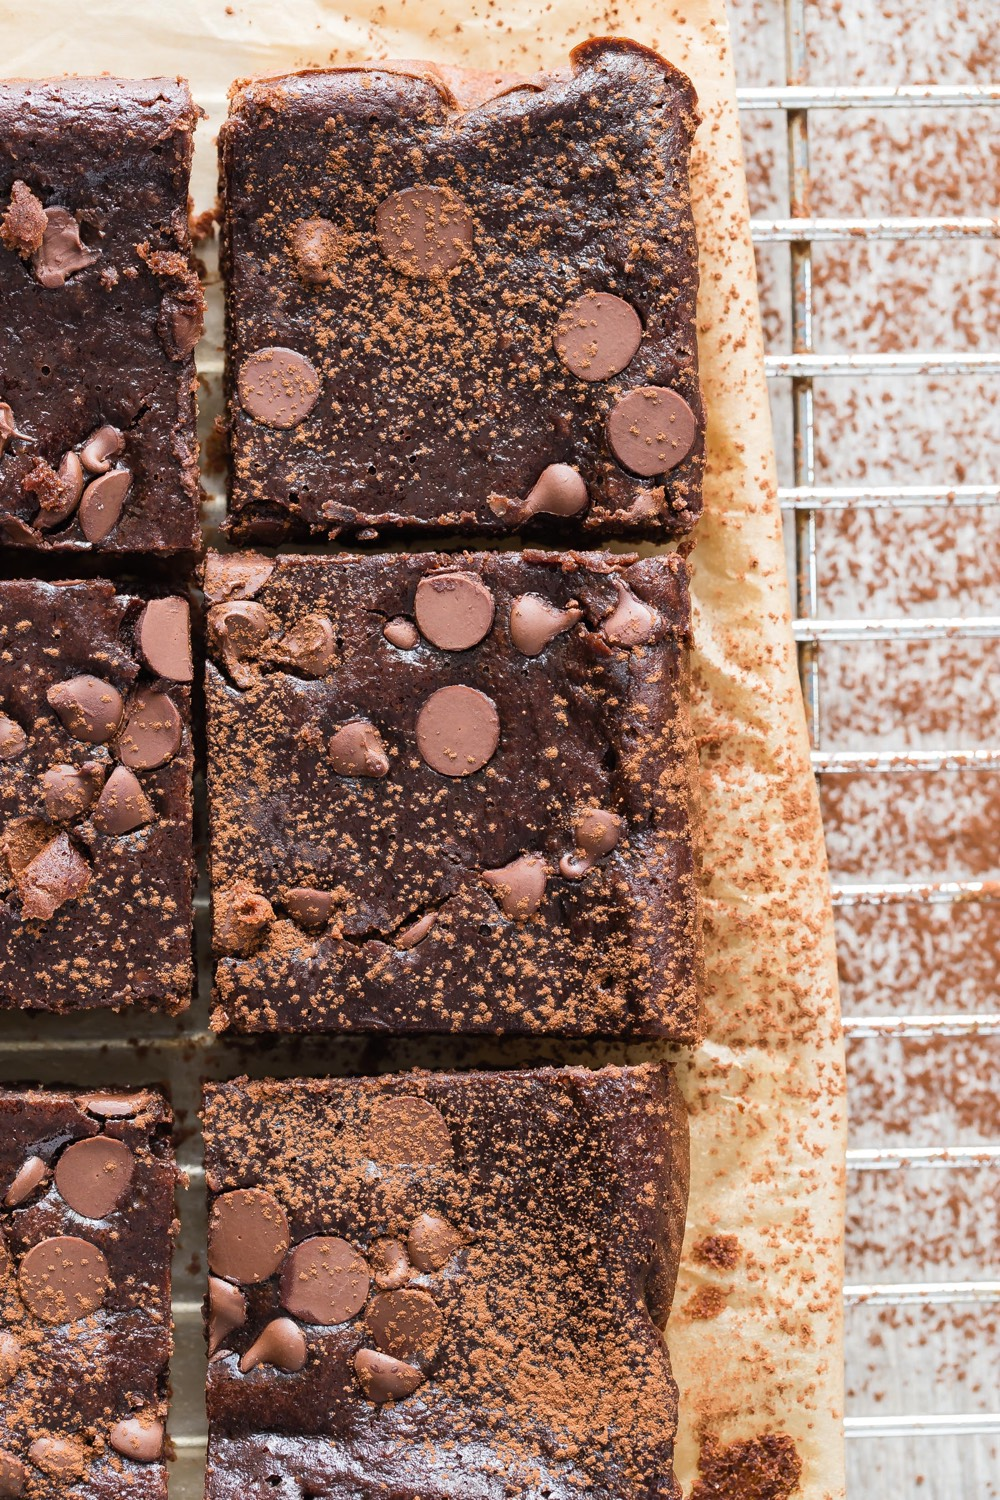 Gluten Free Double Chocolate Black Bean Brownies from weelicious.com